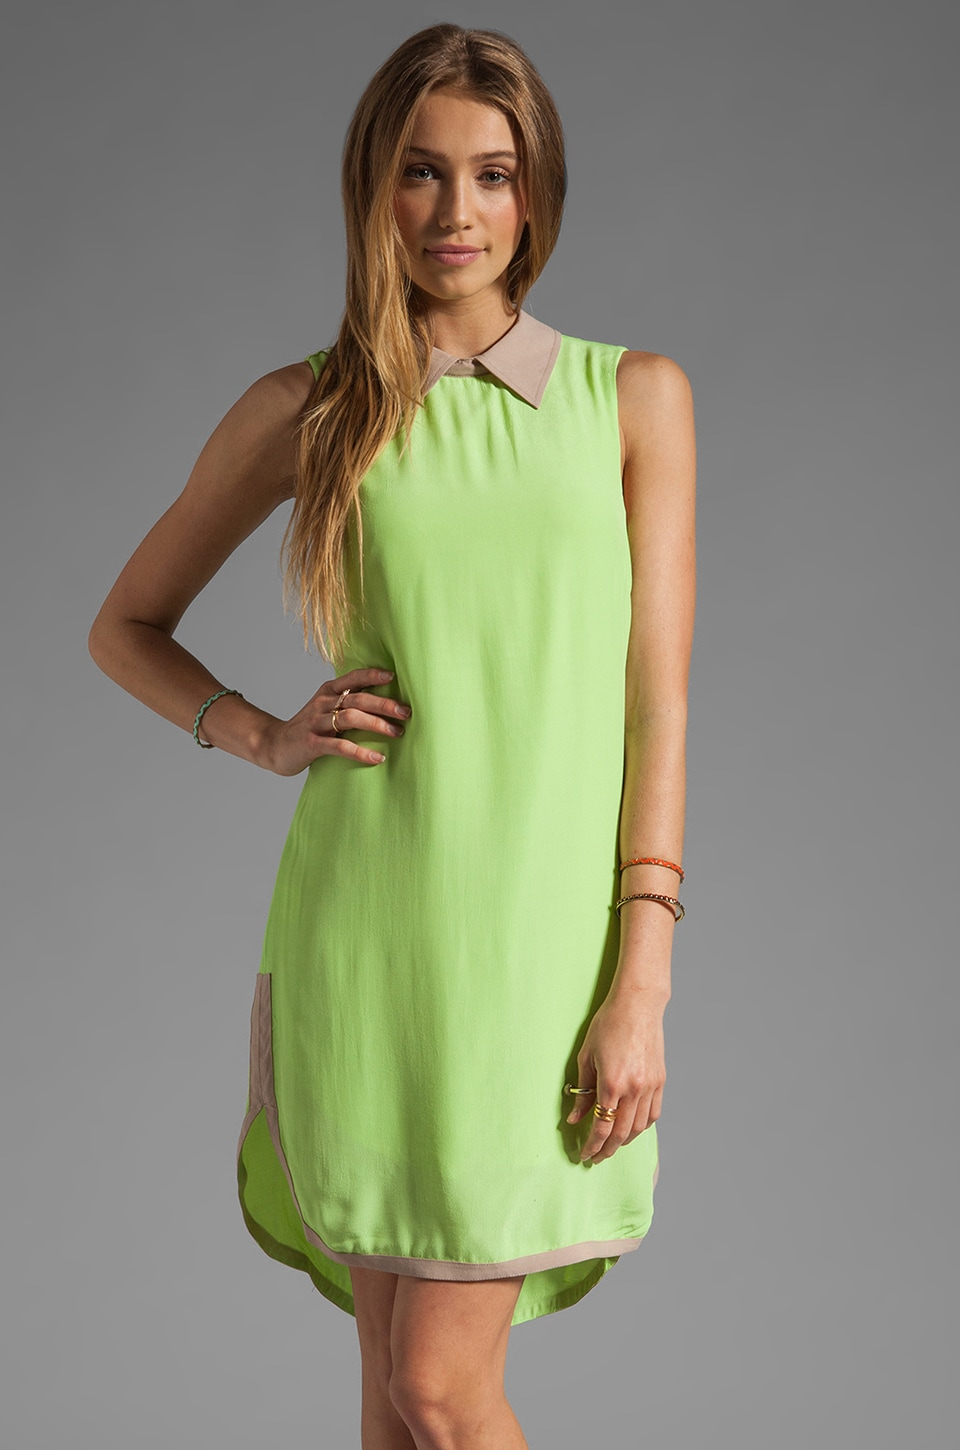 Finders Keepers Mood For Love Dress in Lime/Biscuit